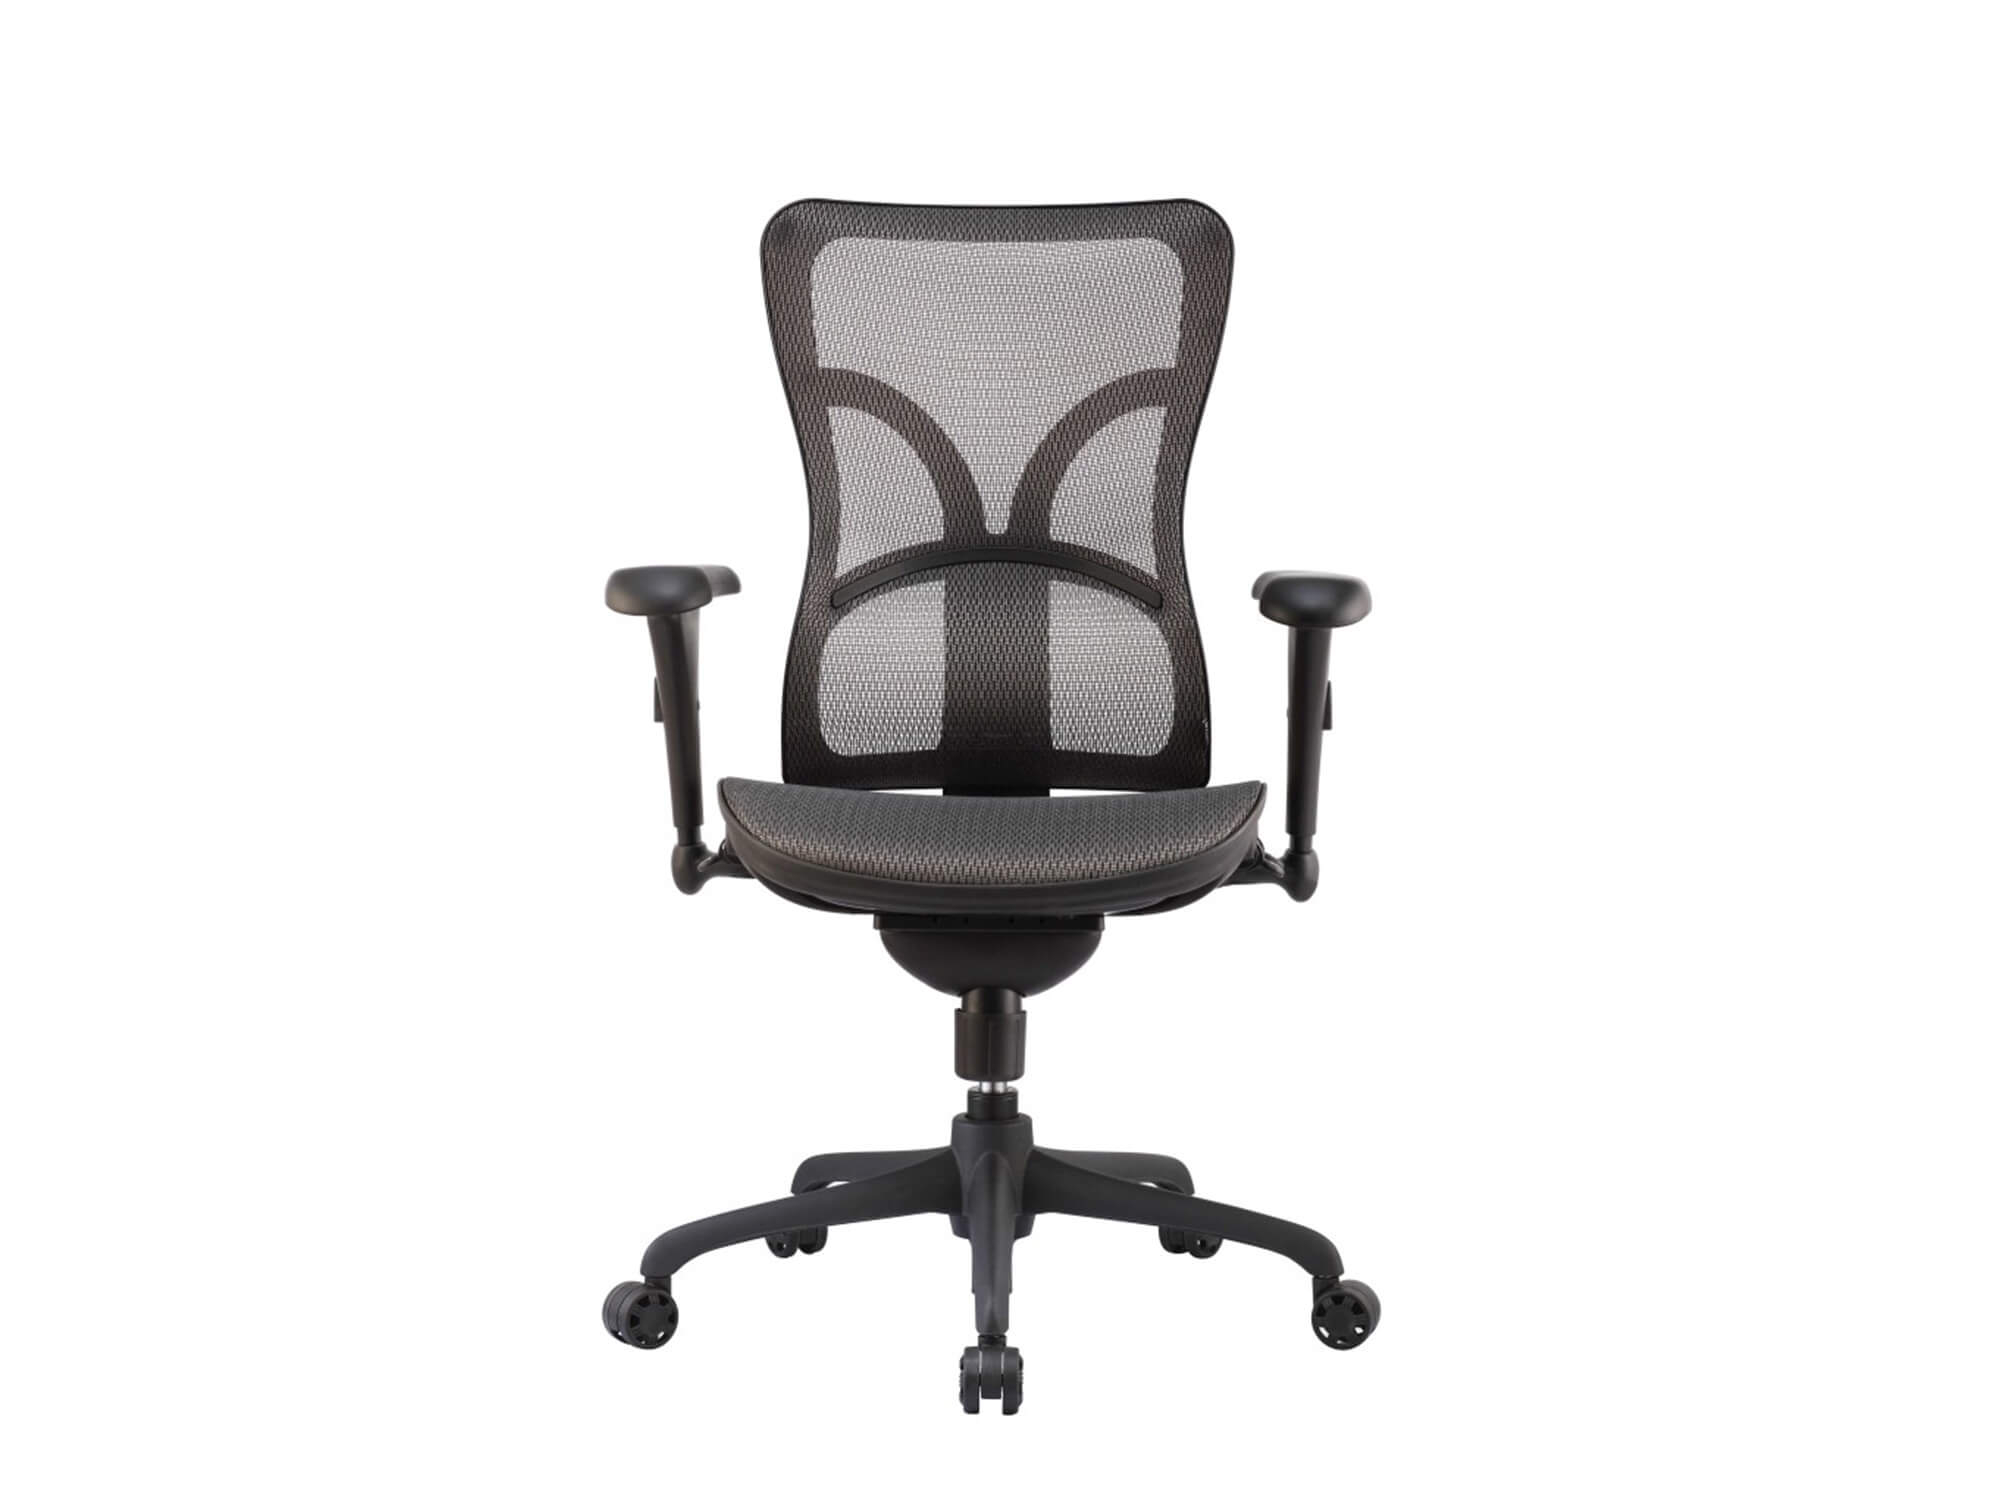 Adjustable office chair front